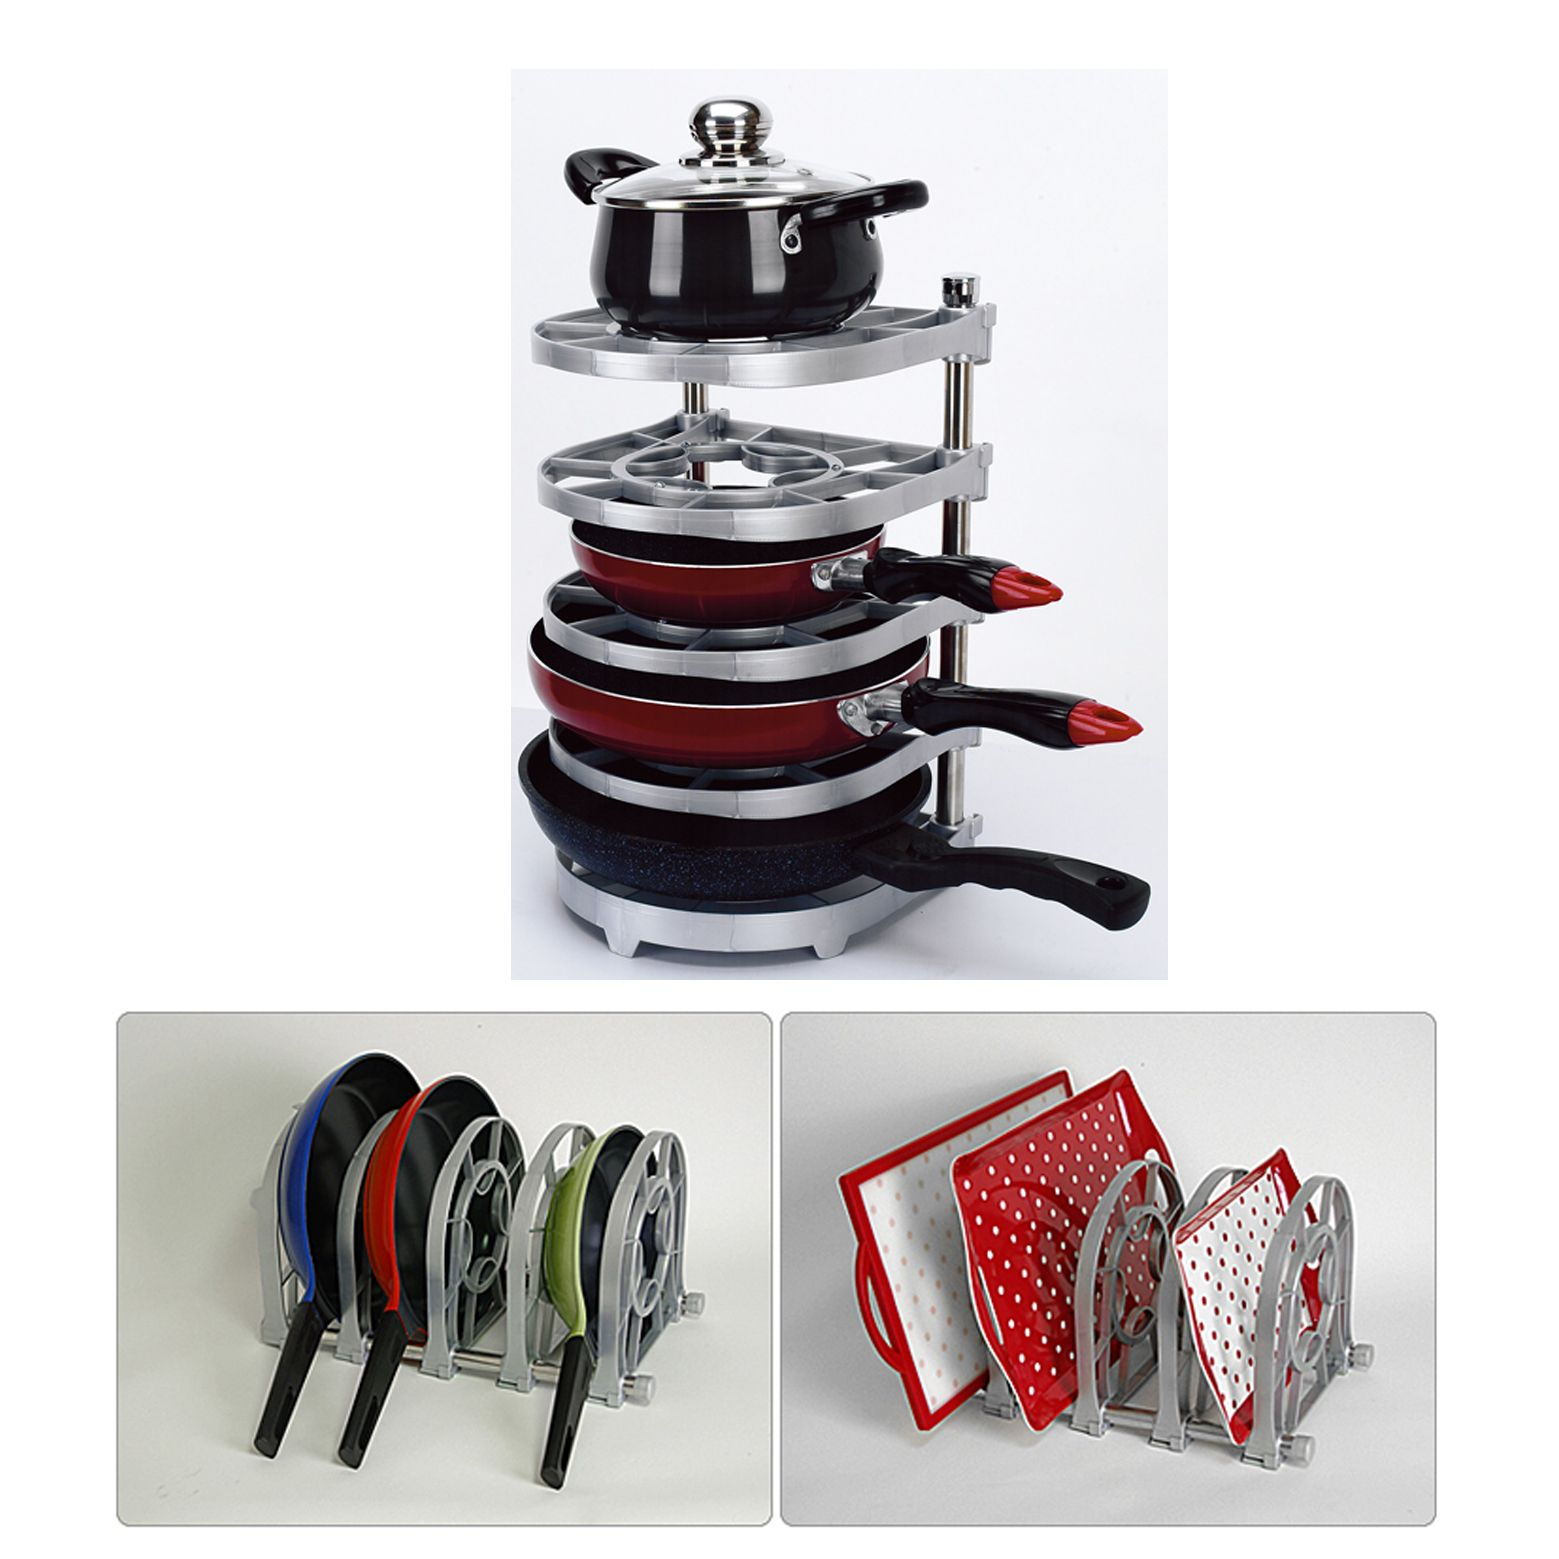 New Pan And Pot Organizer Rack Multi Uses Kitchen Rack